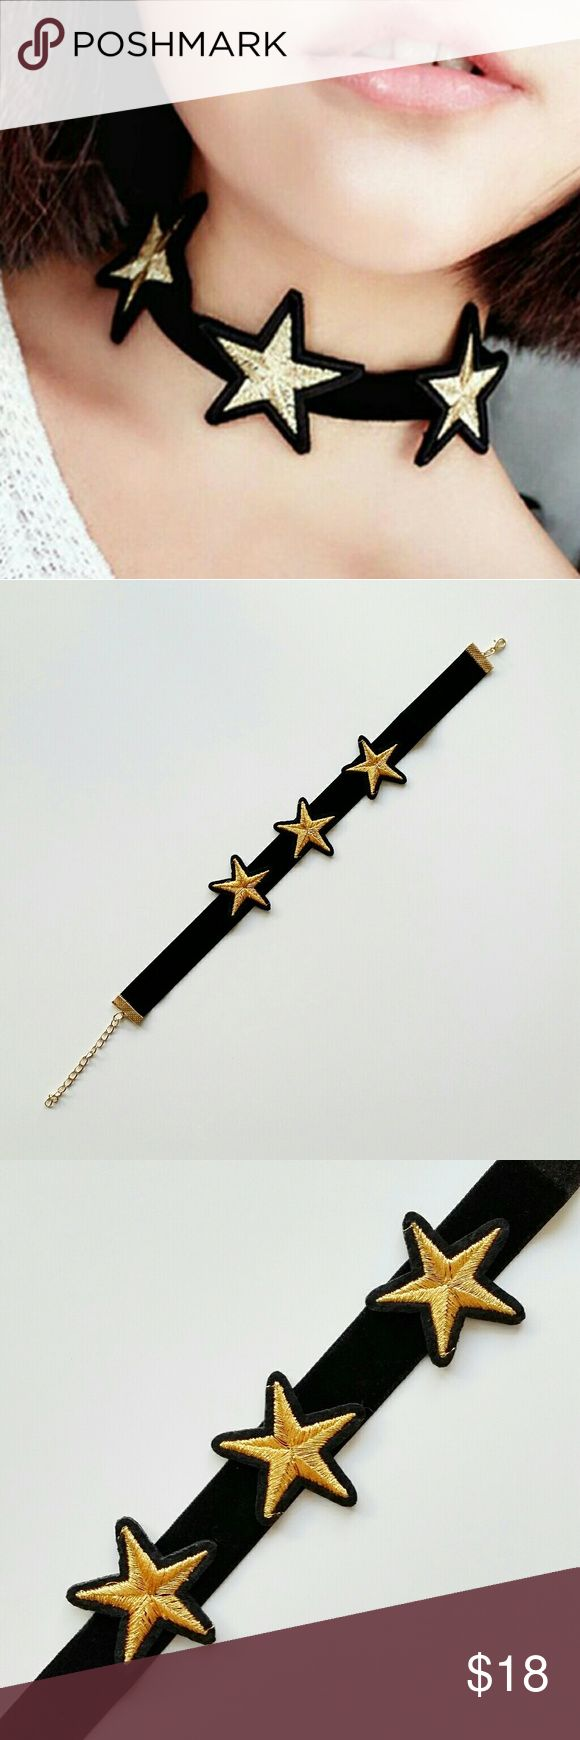 "Gold Star Patch Velvet Choker Gold Star Patch Velvet Choker  *Three gold embroidered patches on black velvet choker. *Each star's placement is unique. Each choker has different length gap between stars and direction they're facing also different. They're placed in more natural way. *12"" in length plus 3"" extender  *New boutique item - No tags. *No trade shop_terracotta Jewelry Necklaces"